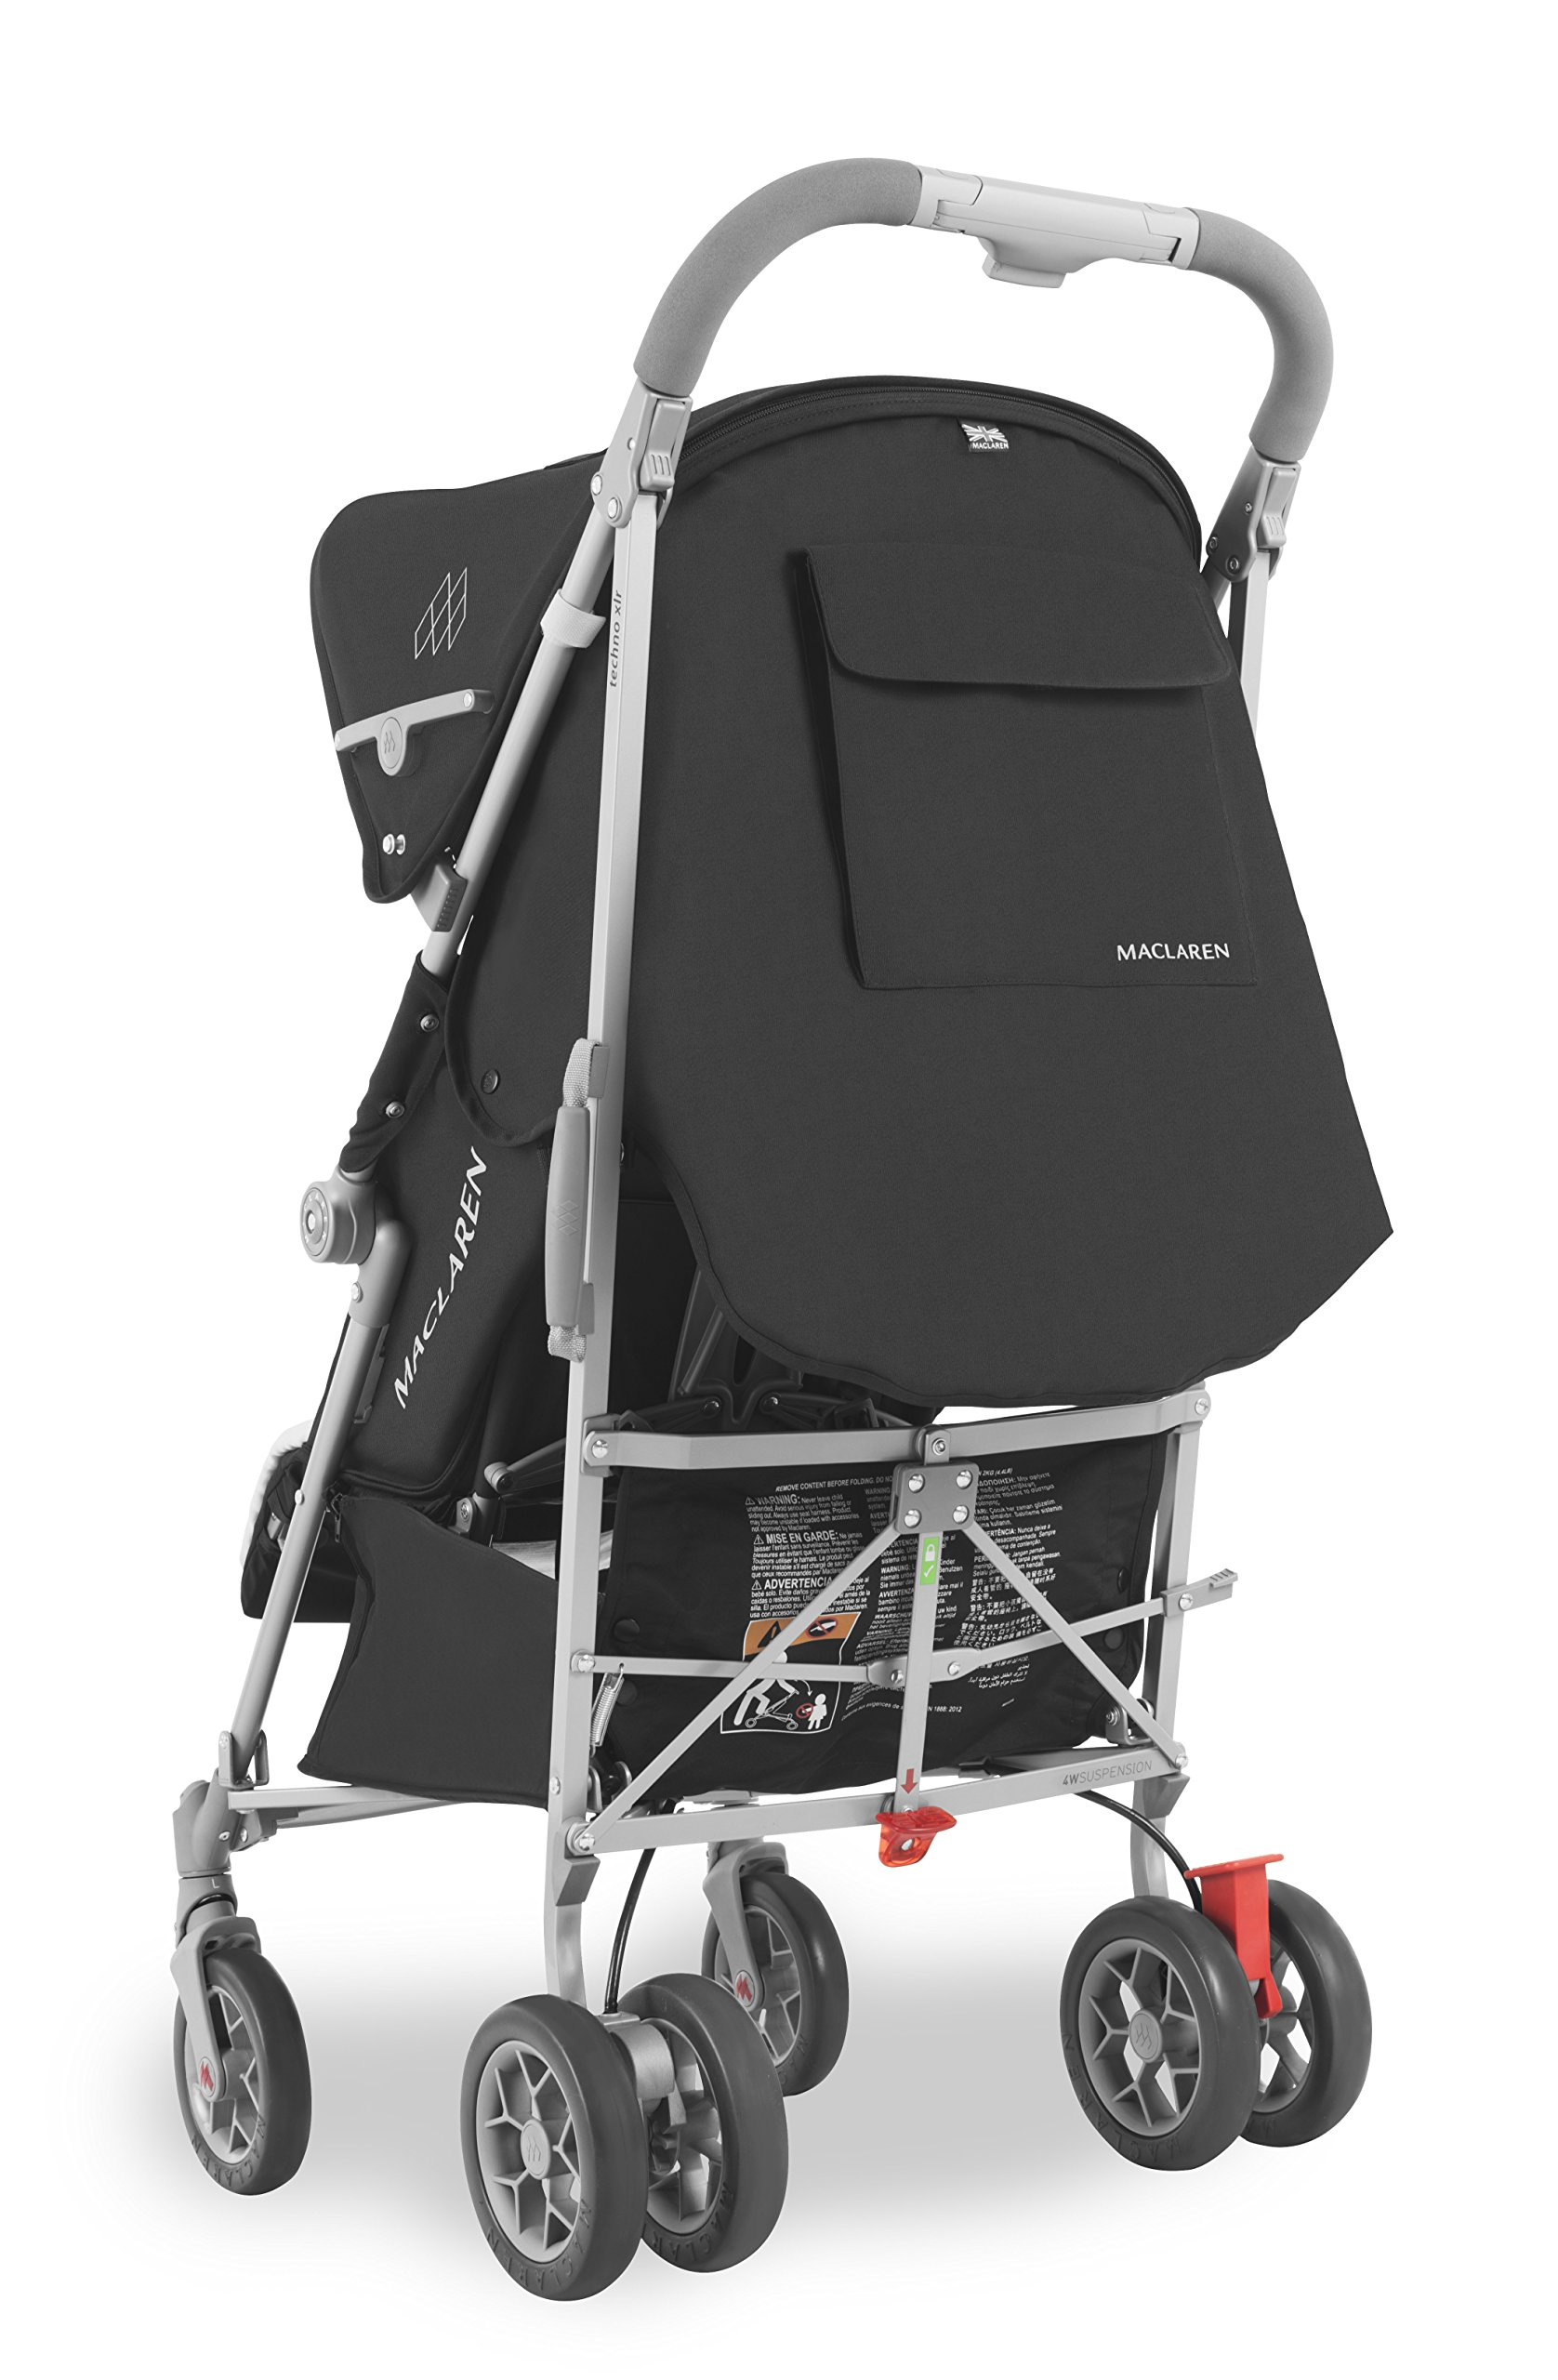 Maclaren Techno XLR arc Travel System Stroller Maclaren Basic weight of 6.7kg/14.8lb; ideal for new-borns and children up to 25kg/55lb (usa 65lb) Maclaren is the only brand to offer a sovereign lifetime warranty Extendable upf 50+ sun canopy and built-in sun visor 3